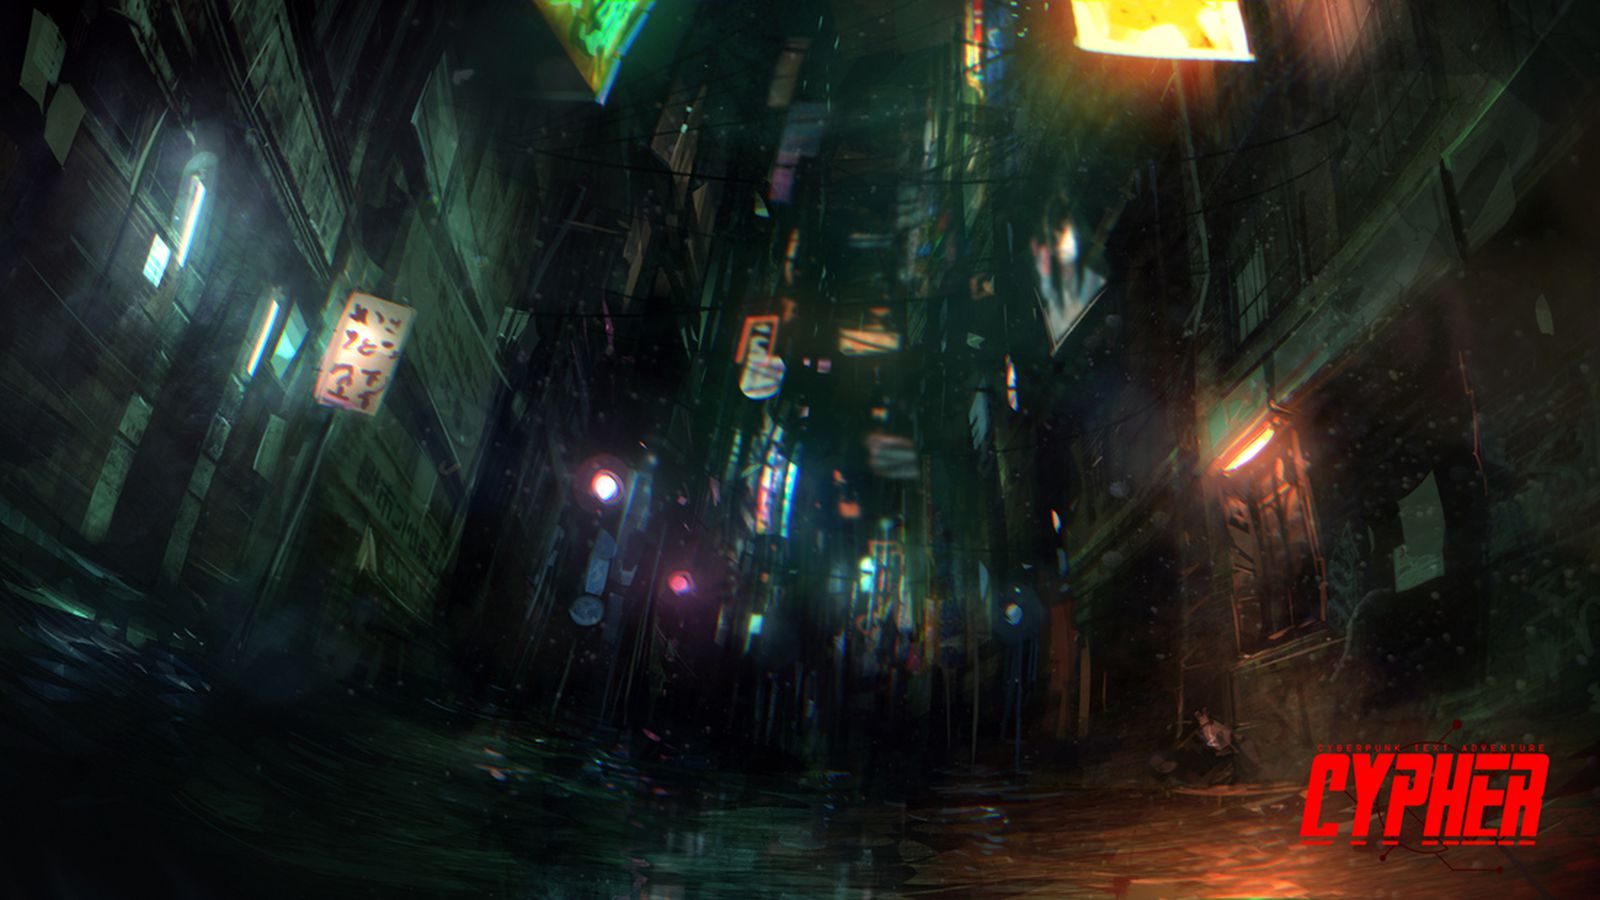 Cyberpunk Meets Interactive Fiction The Art Of Cypher